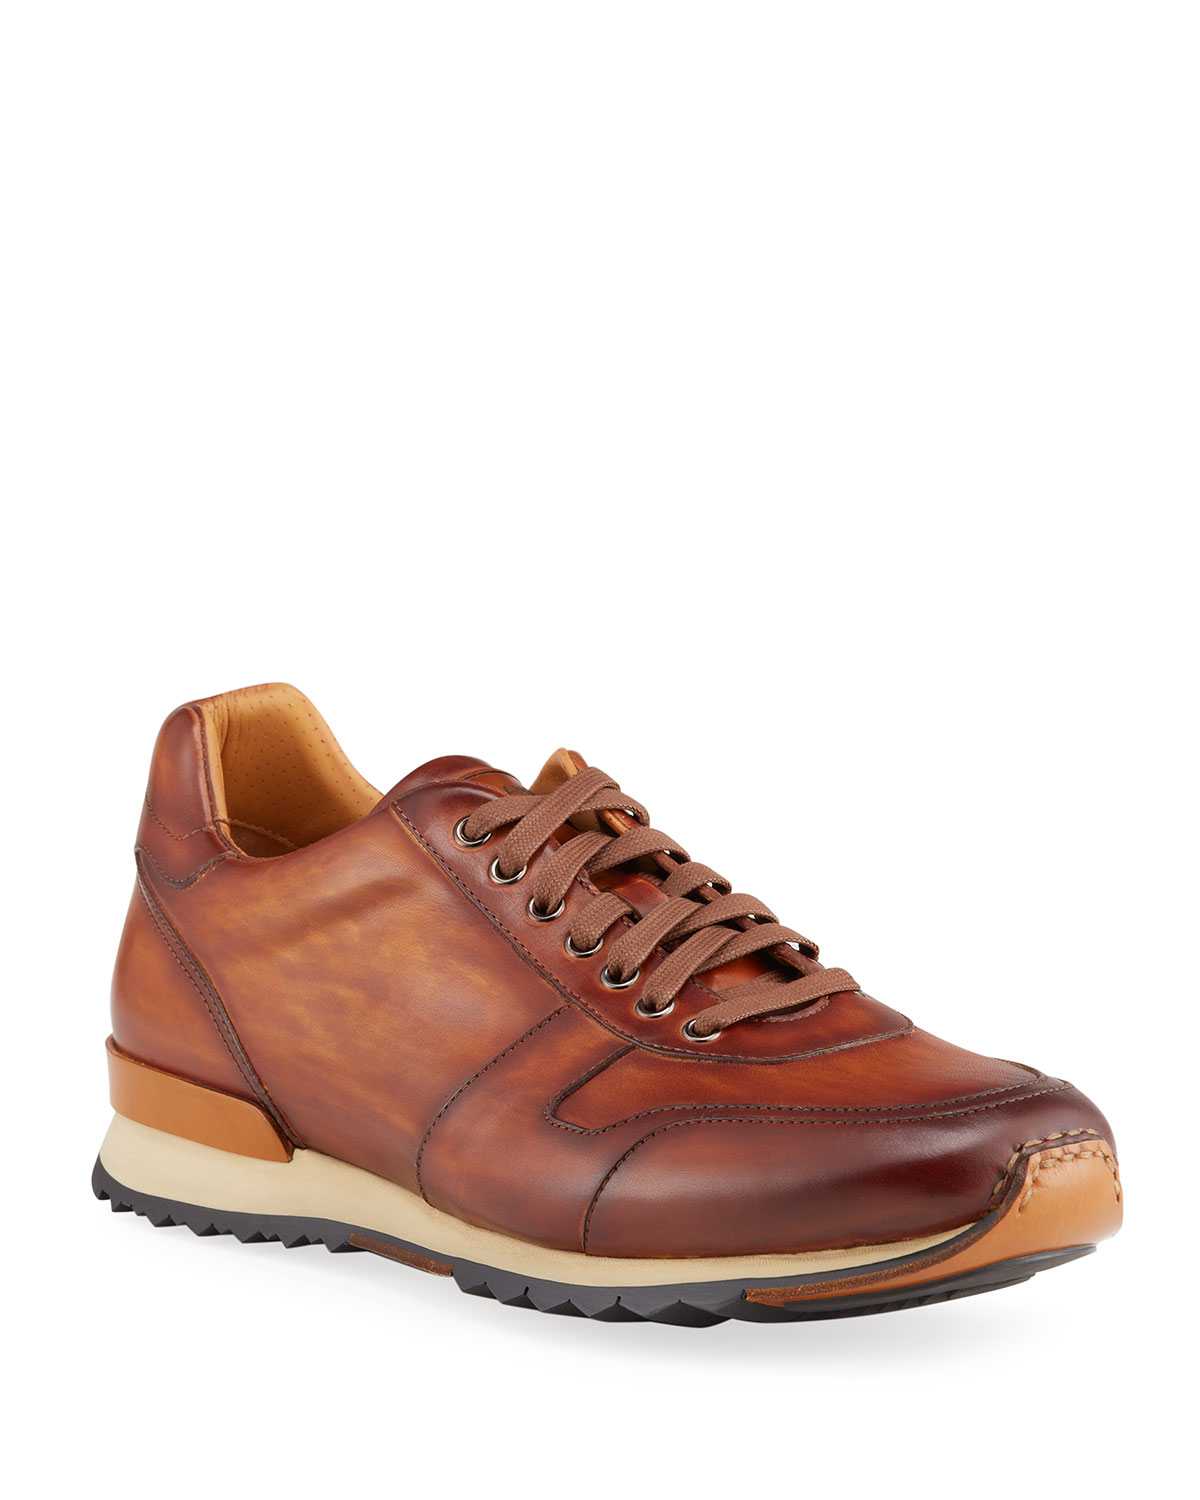 Men's Urano Burnished Leather Lace-Up Sneakers